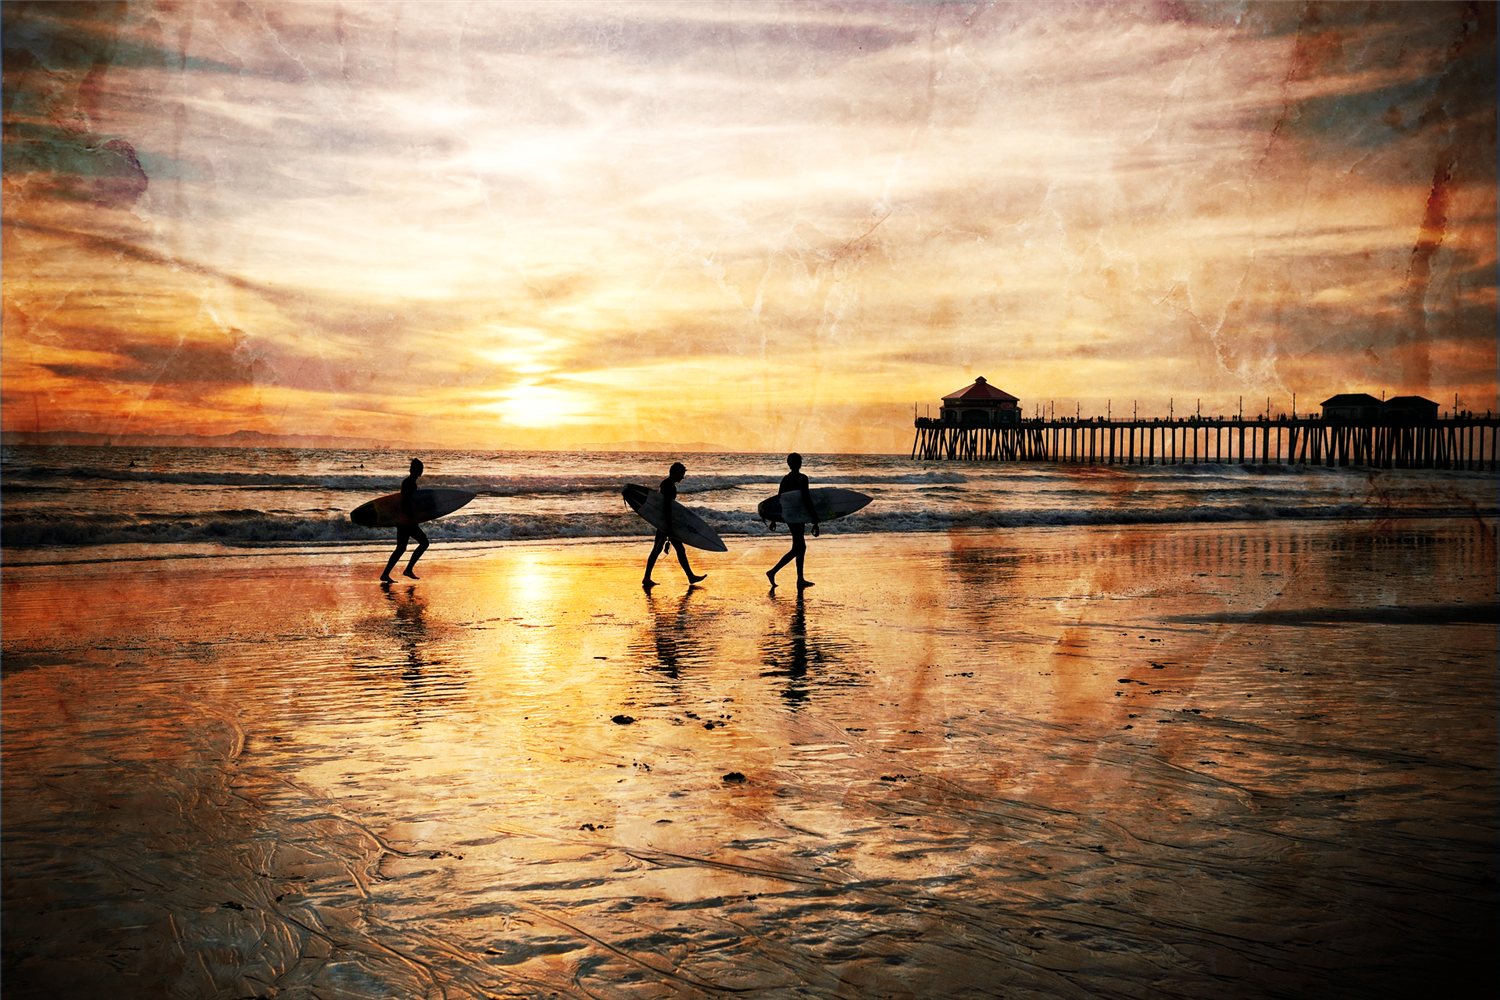 huntington beach surfers